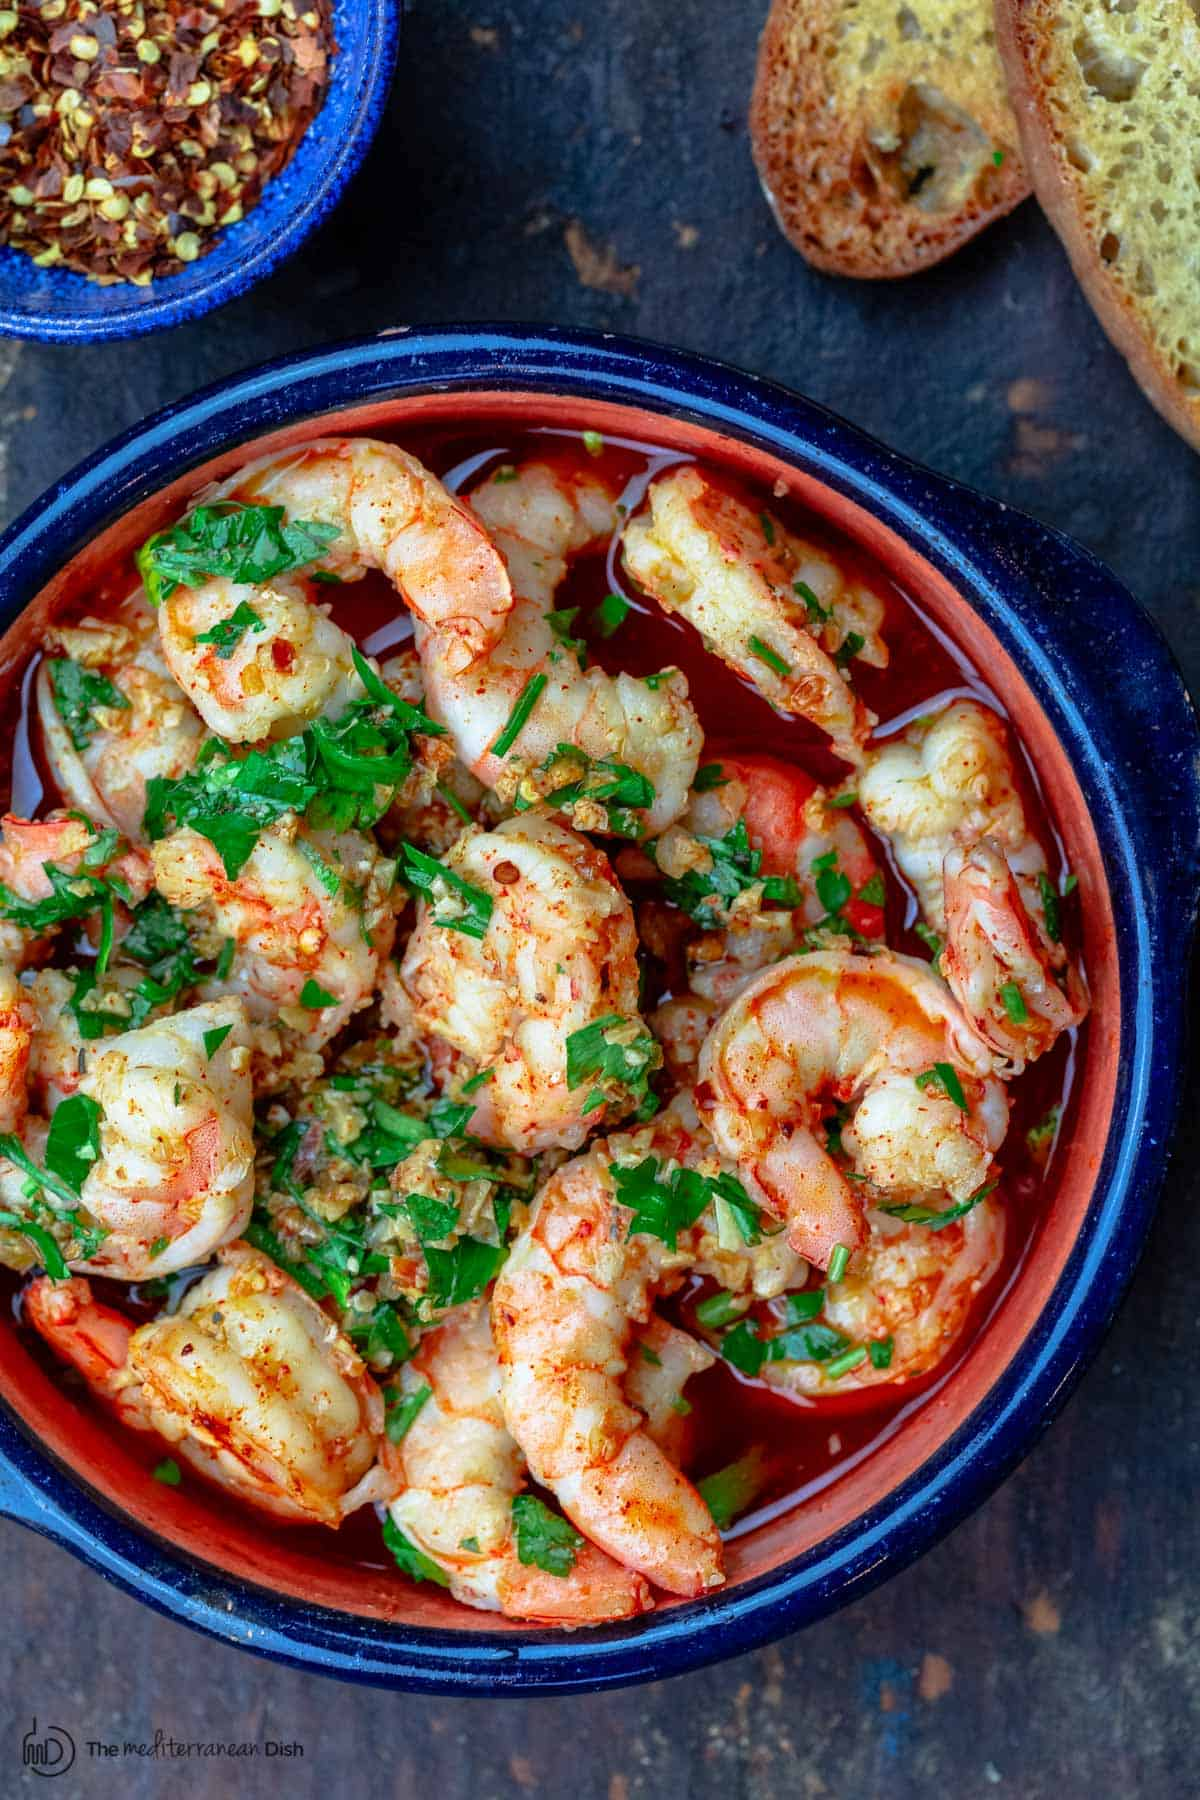 Spanish garlic shrimp with a side of bread and hot red pepper flakes